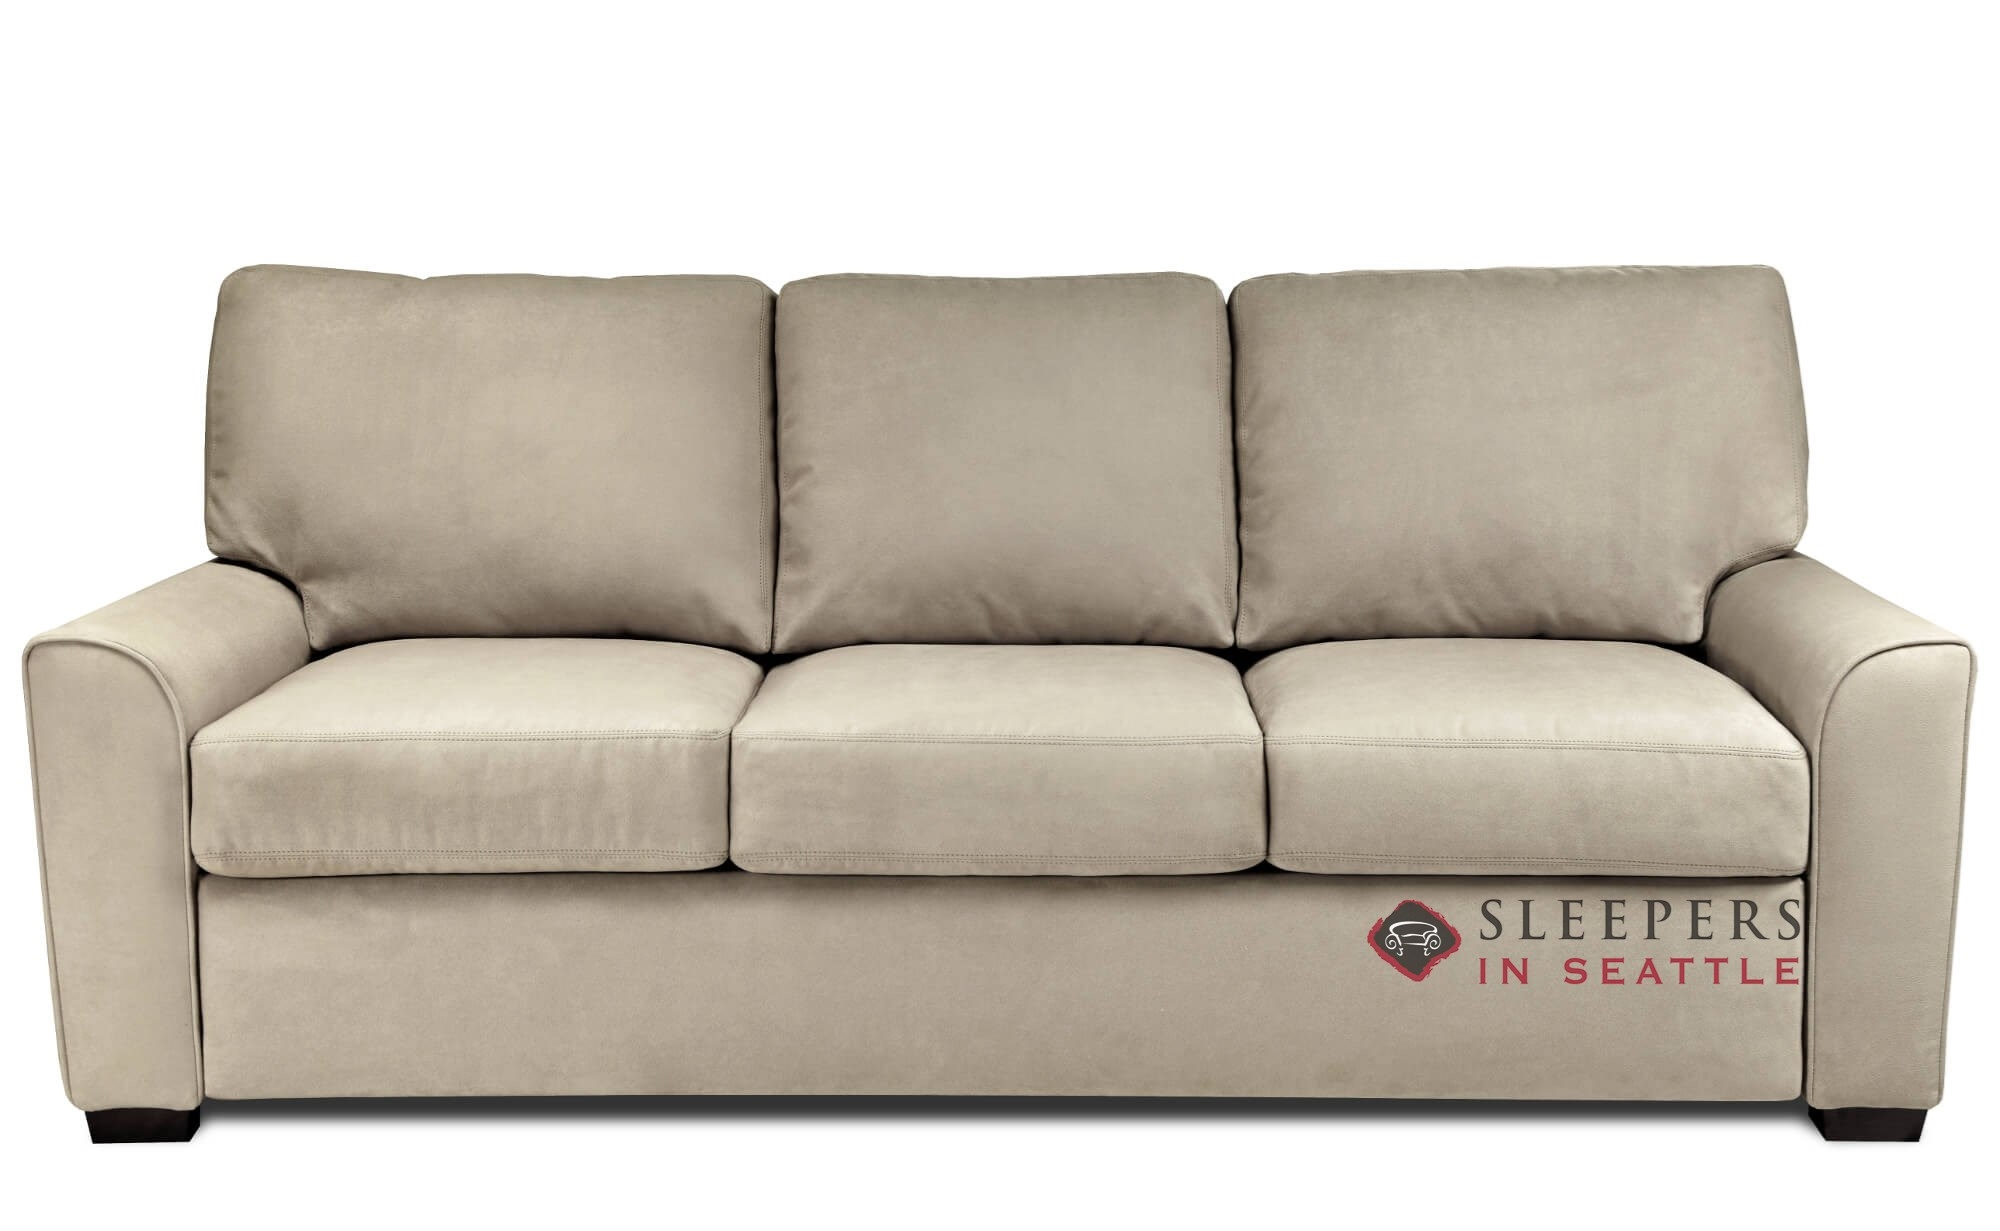 sofa klein great sofa klein with sofa klein perfect. Black Bedroom Furniture Sets. Home Design Ideas